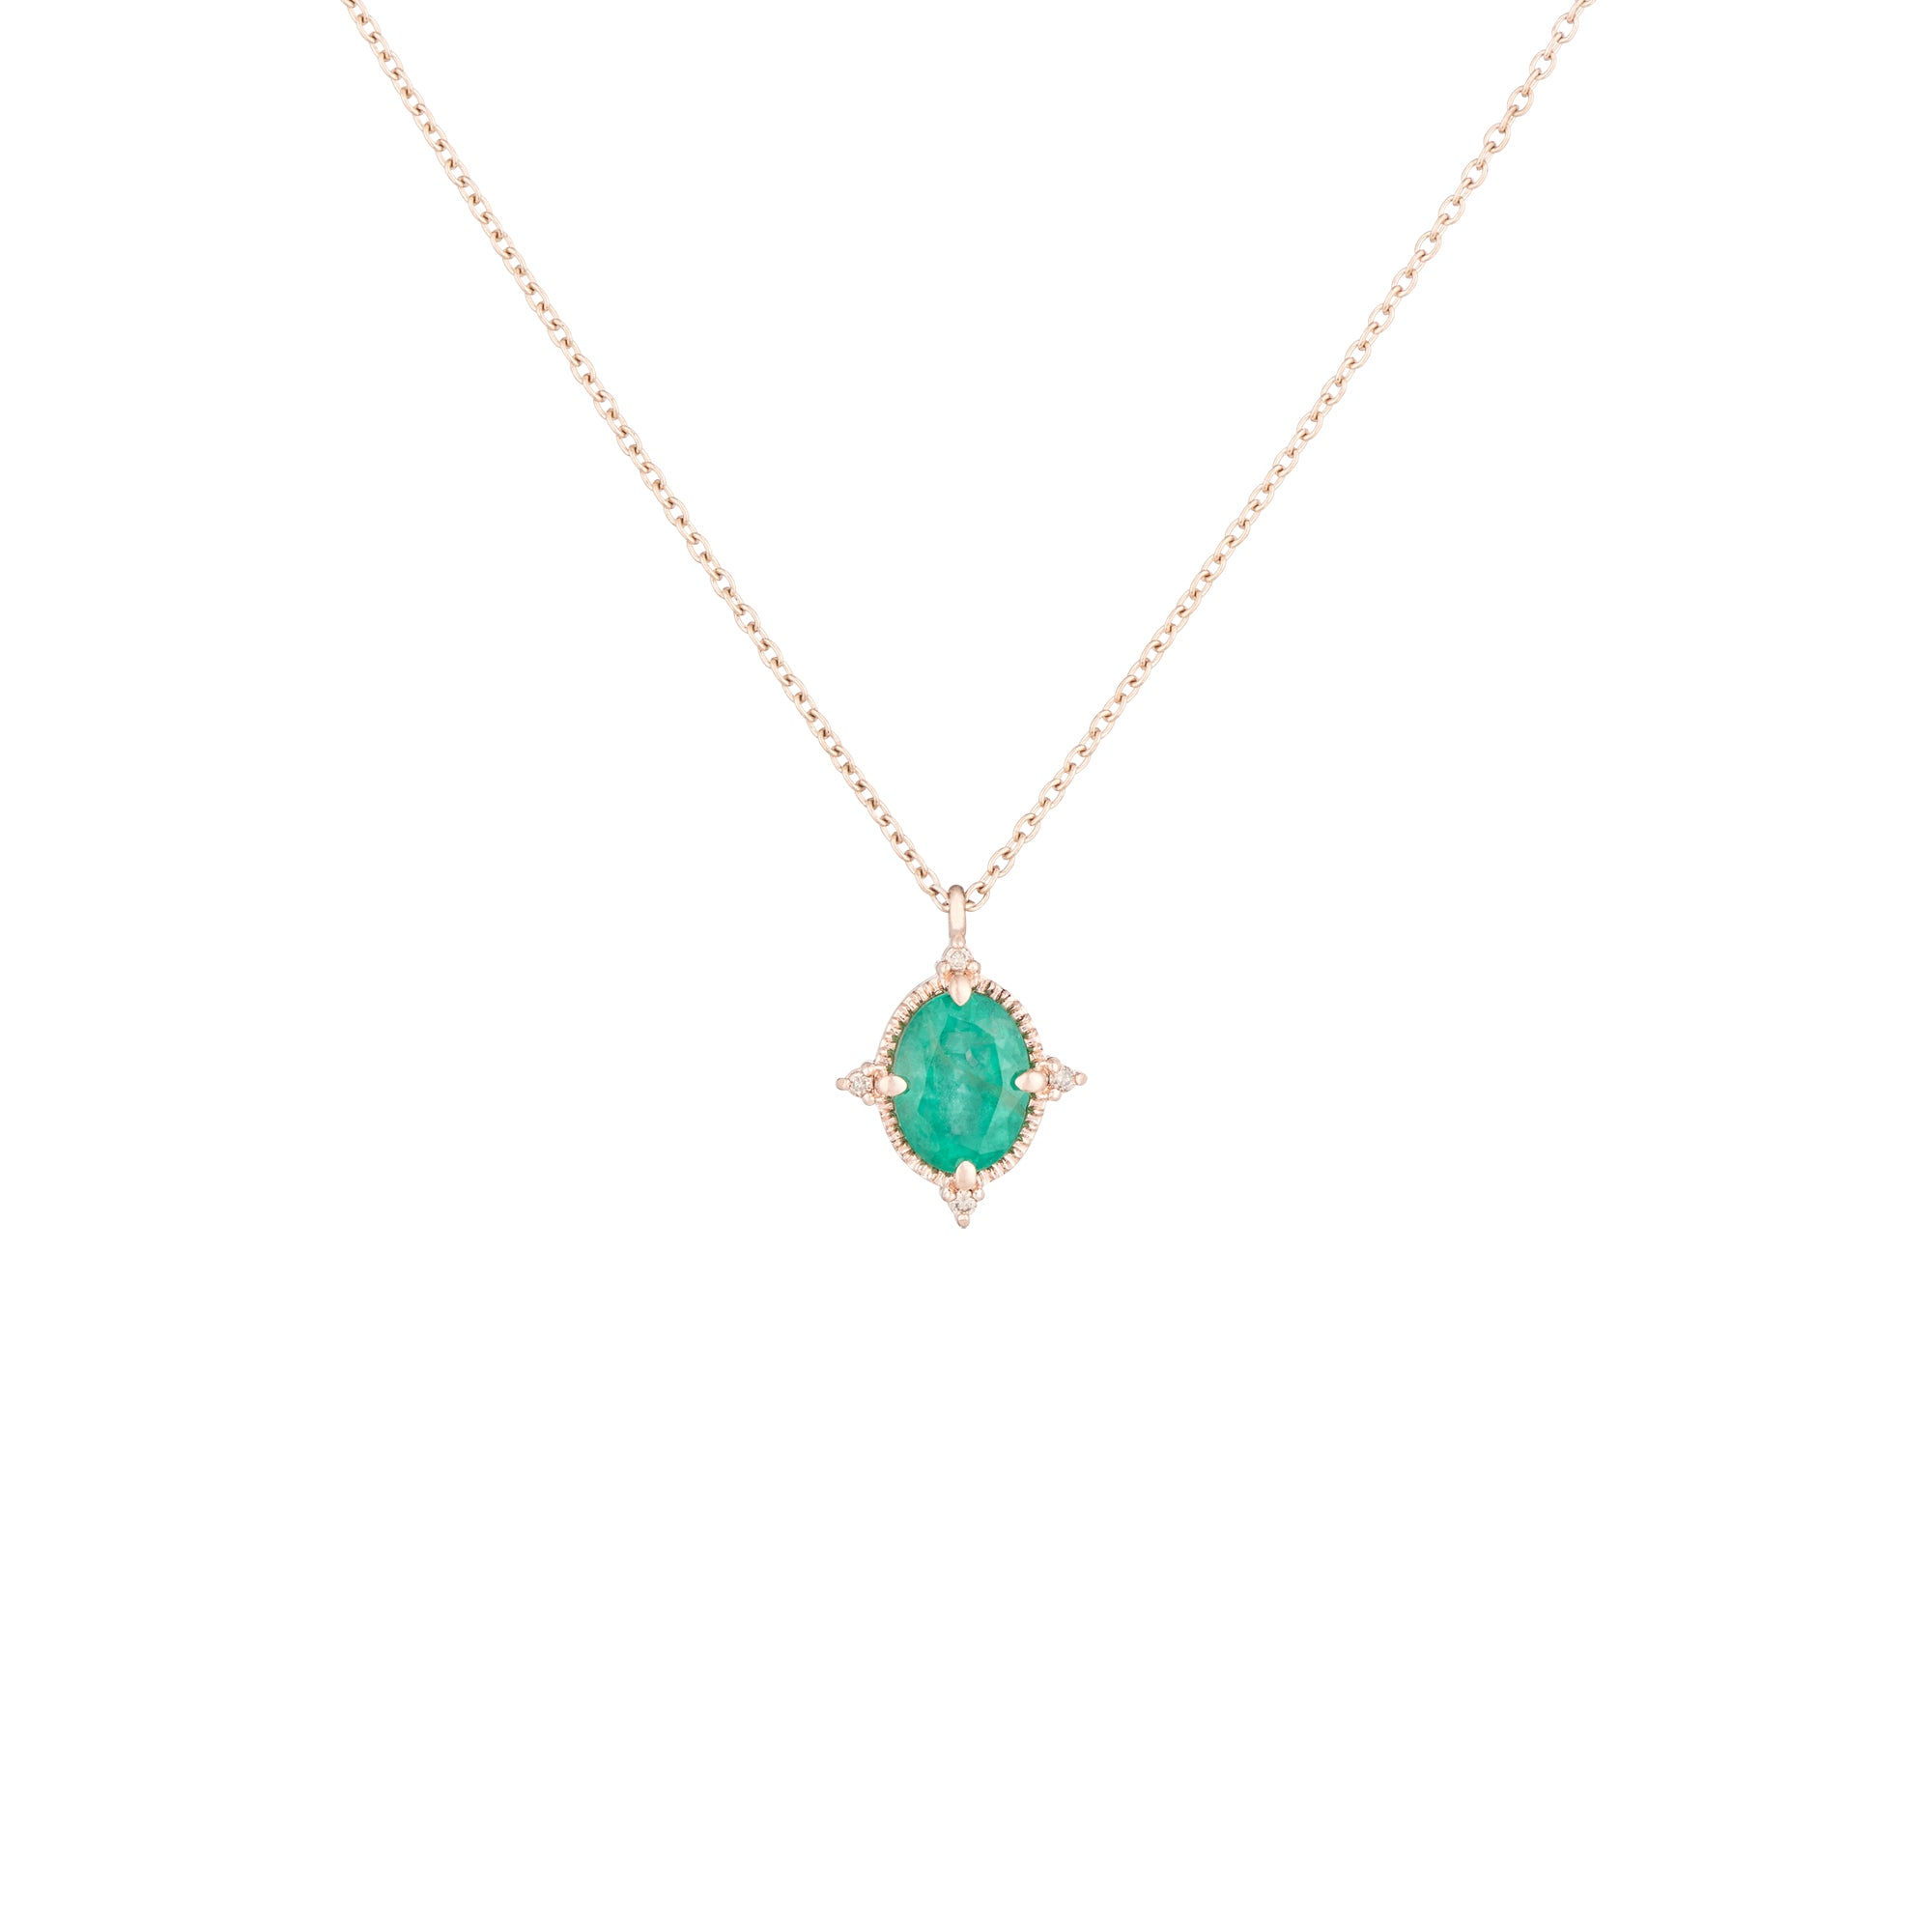 emerald pendant nmylm jewelry us bsem necklaces maya los leaf astrology blue fine sapphire jewellery marquise necklace london stone